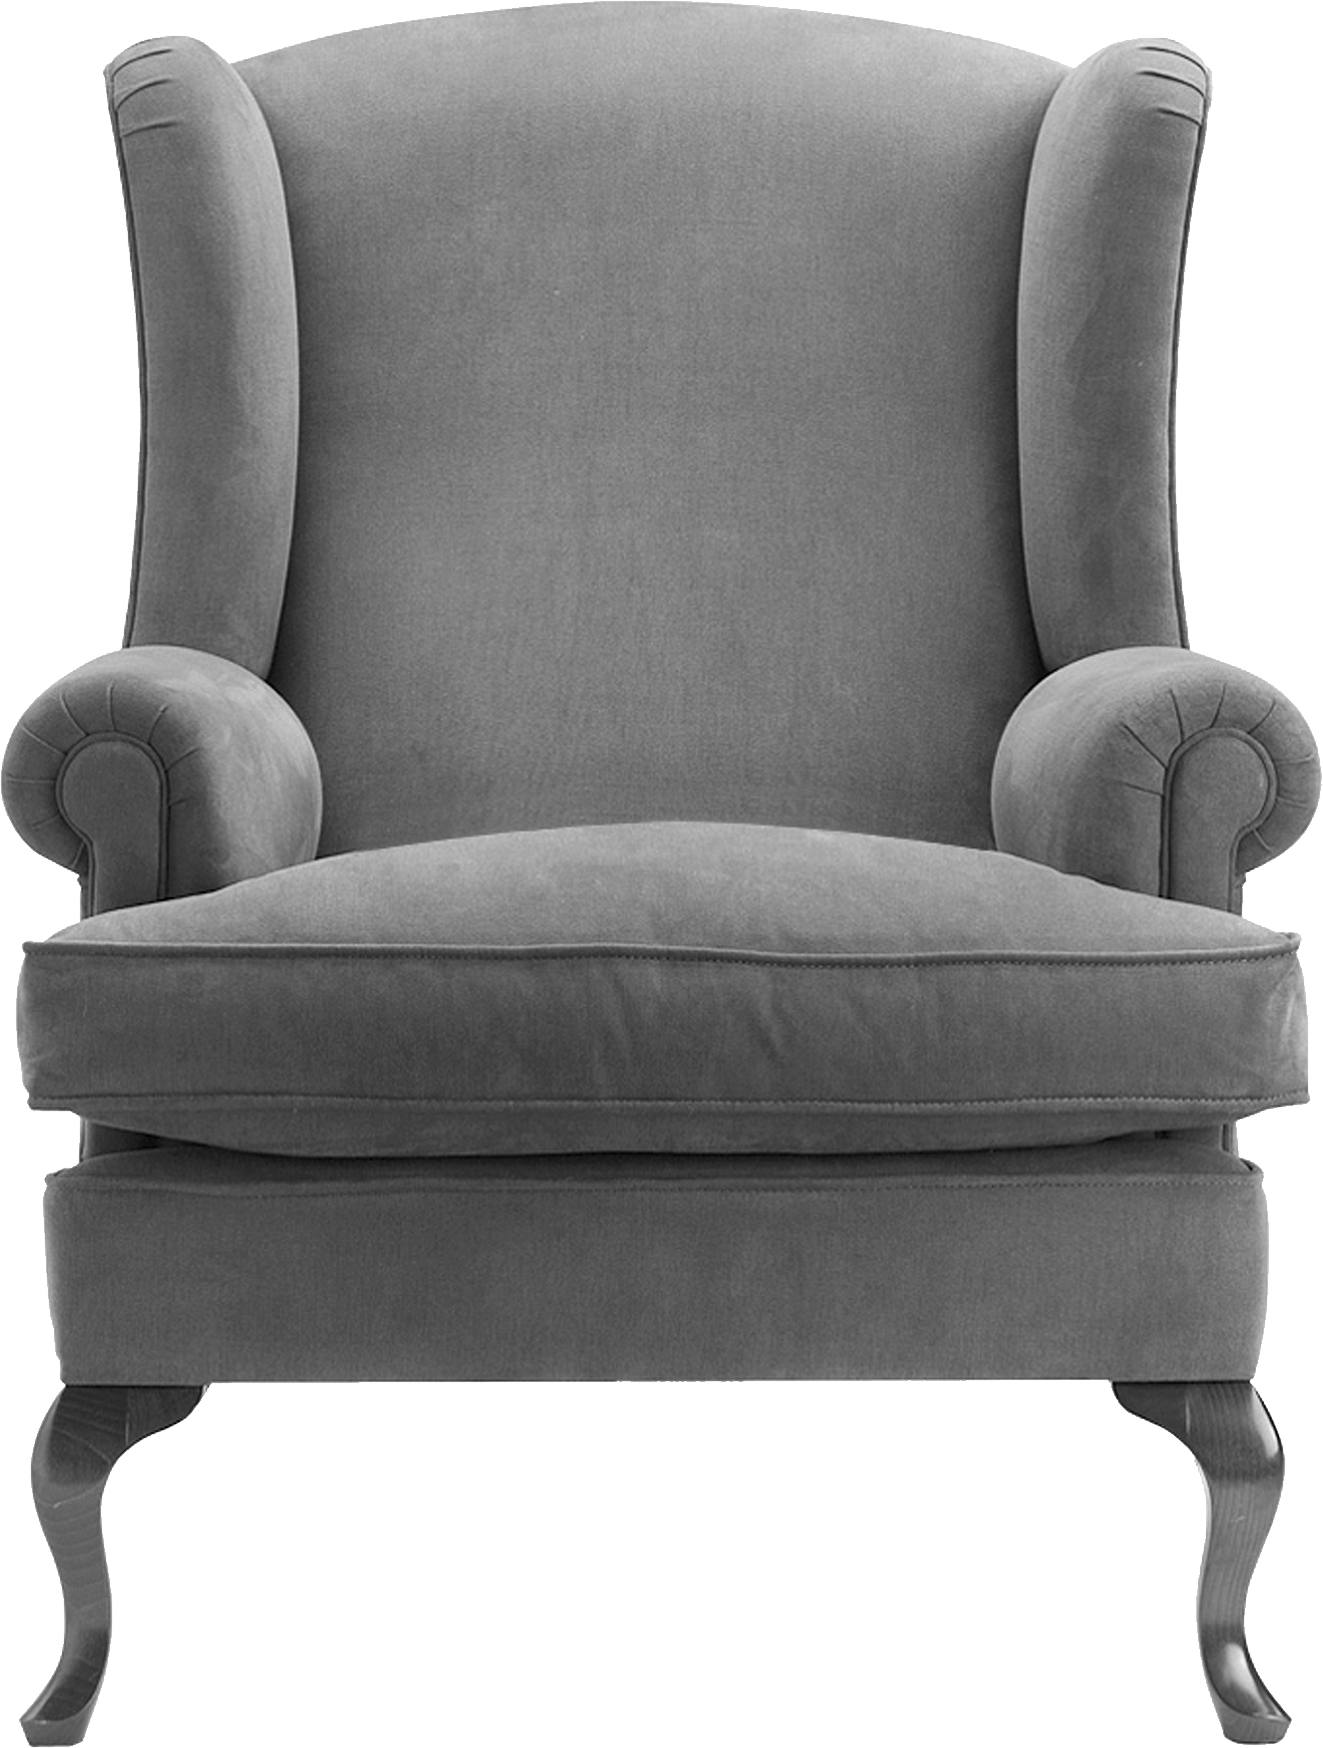 Armchair Download Free PNG